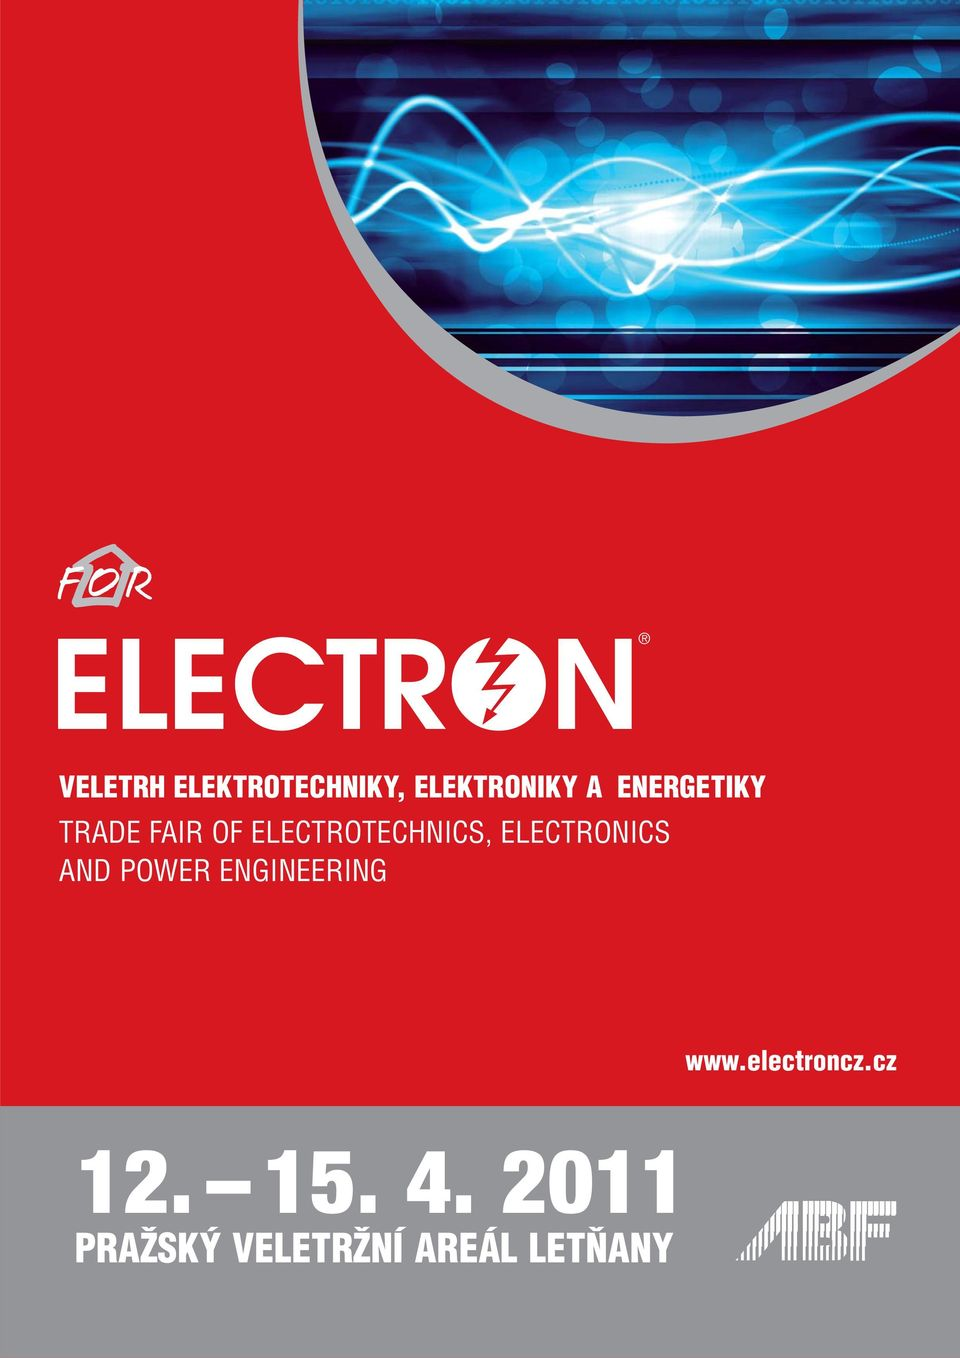 ENERGETIKY TRADE FAIR OF ELECTROTECHNICS, ELECTRONICS AND POWER